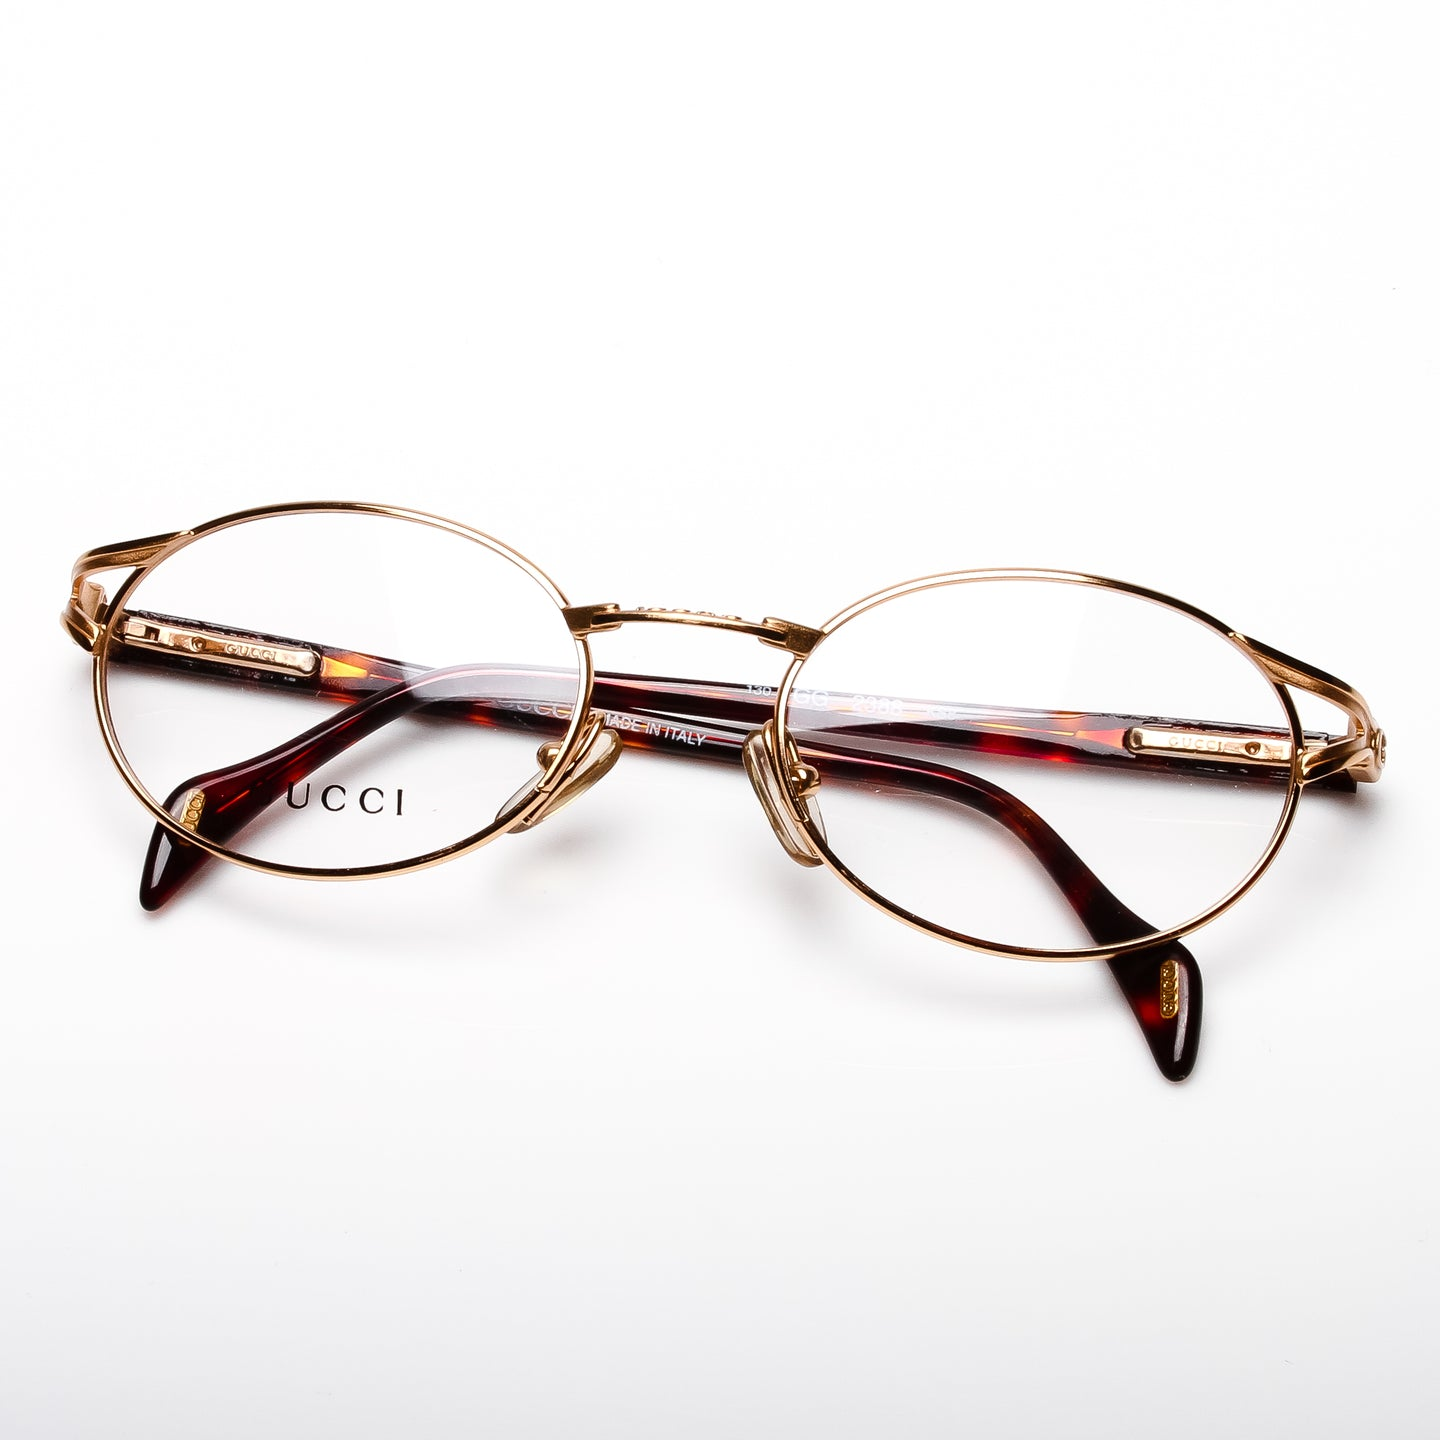 Gucci 2388 KS8, Gucci , glasses frames, eyeglasses online, eyeglass frames, mens glasses, womens glasses, buy glasses online, designer eyeglasses, vintage sunglasses, retro sunglasses, vintage glasses, sunglass, eyeglass, glasses, lens, vintage frames company, vf